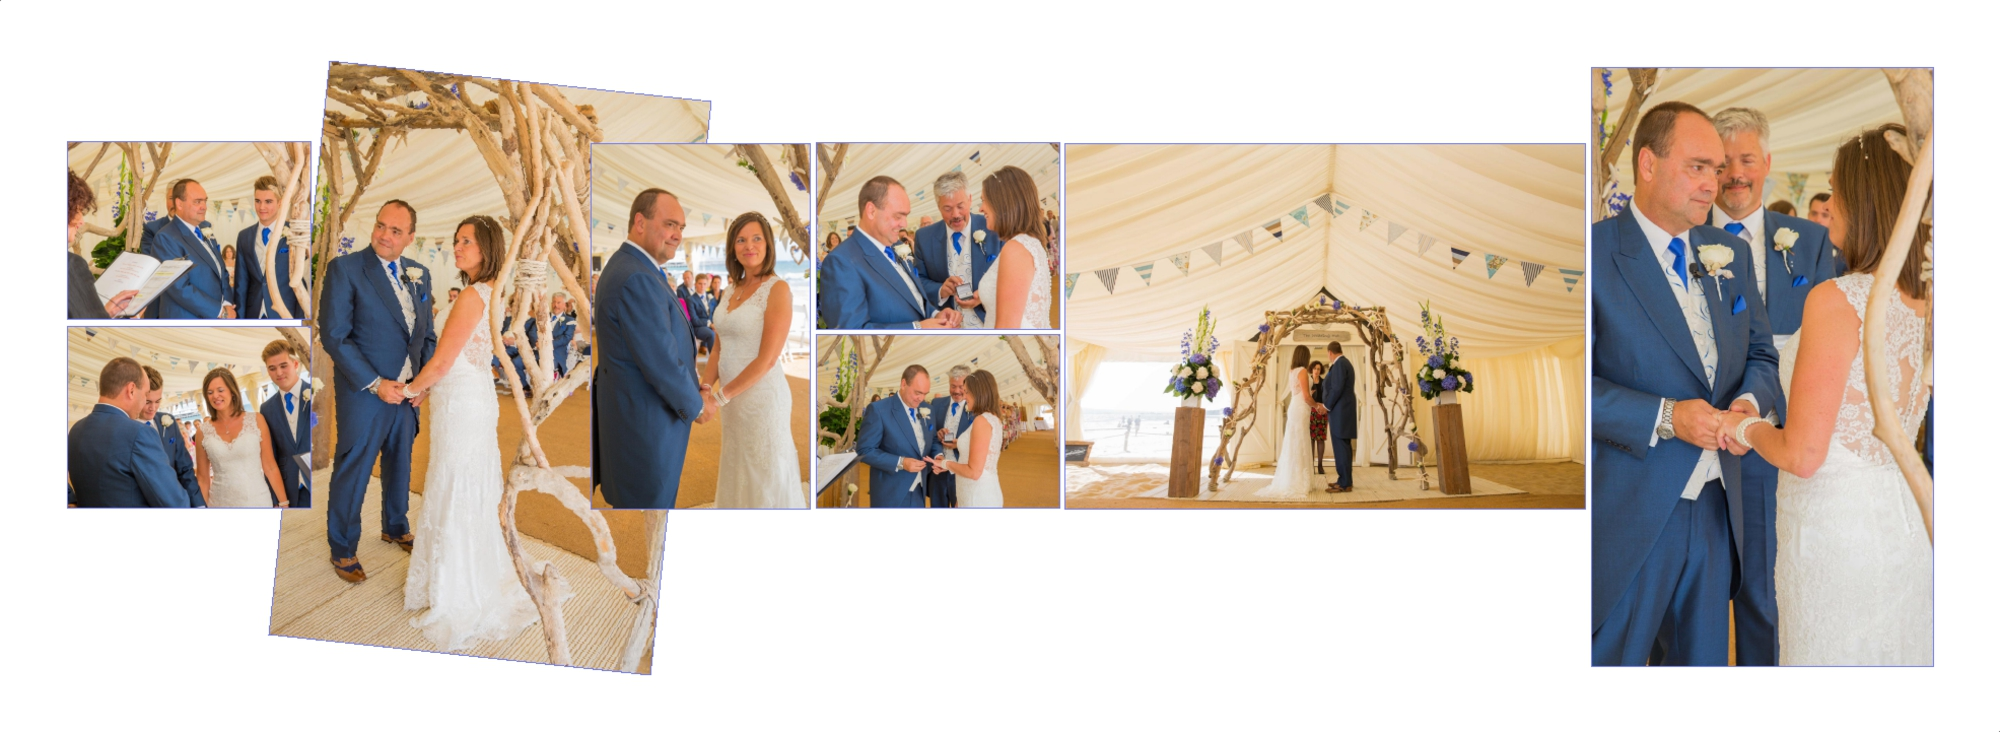 Cenemony wedding photography Beach weddings Kimberley Garrod